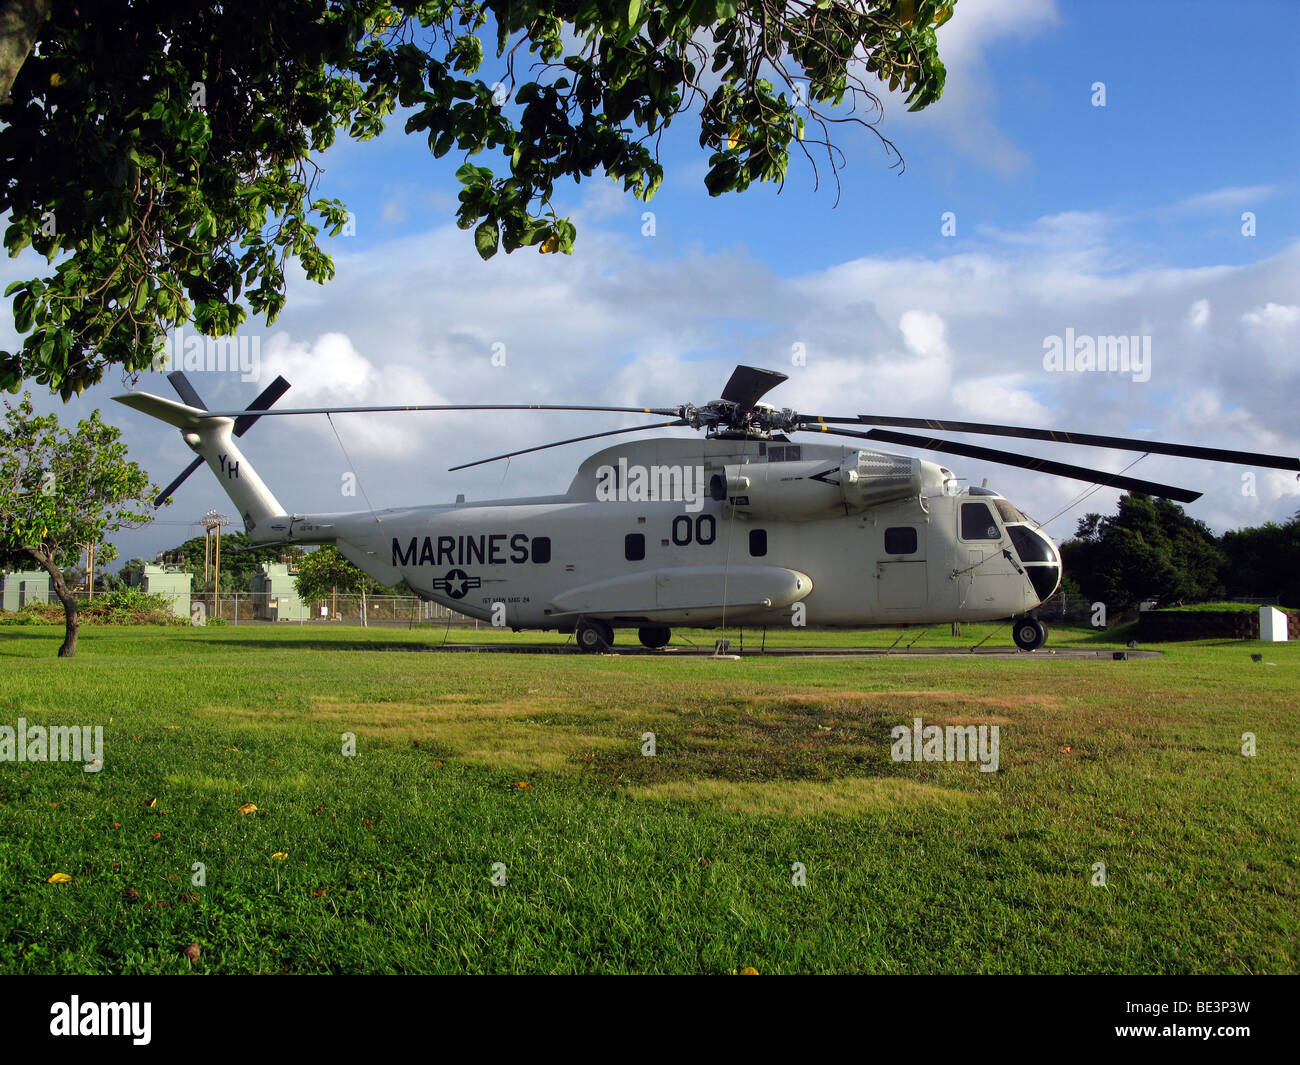 CH-53 Sea Stallion heavy lift transport helicopter on display . - Stock Image